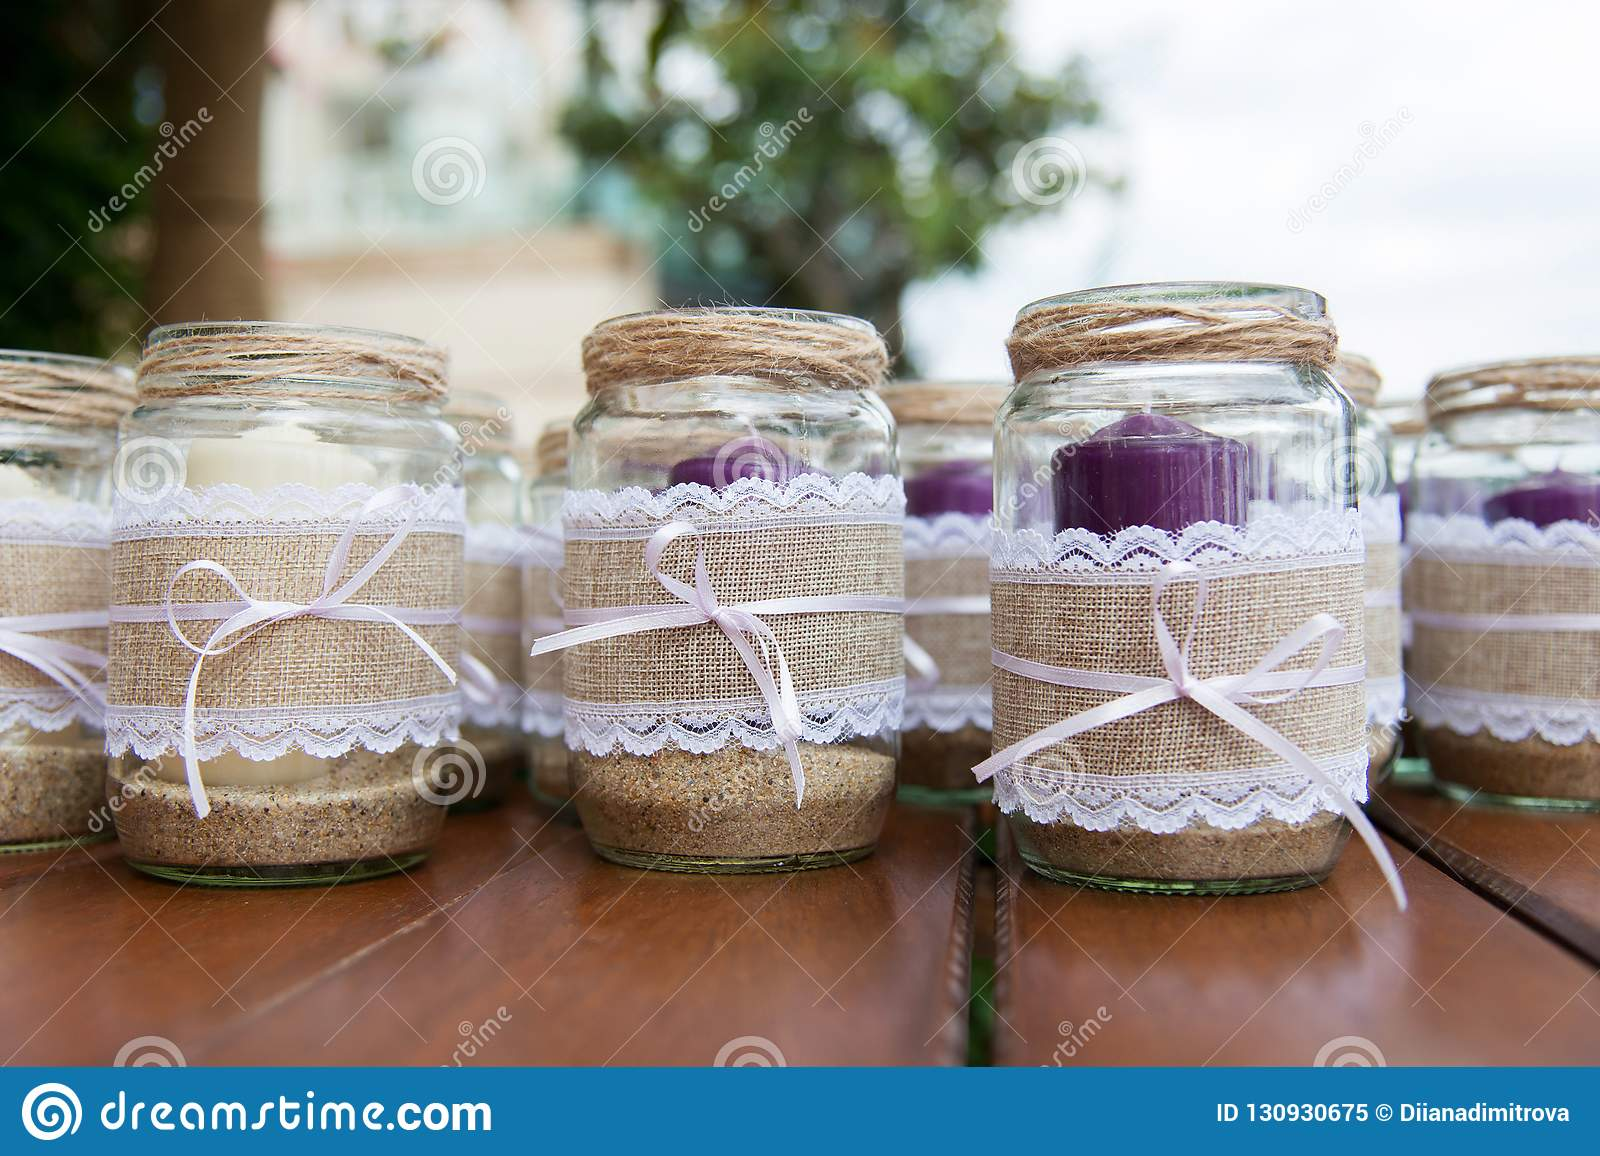 Wedding Decoration Candles In Glass Jars Decorated With